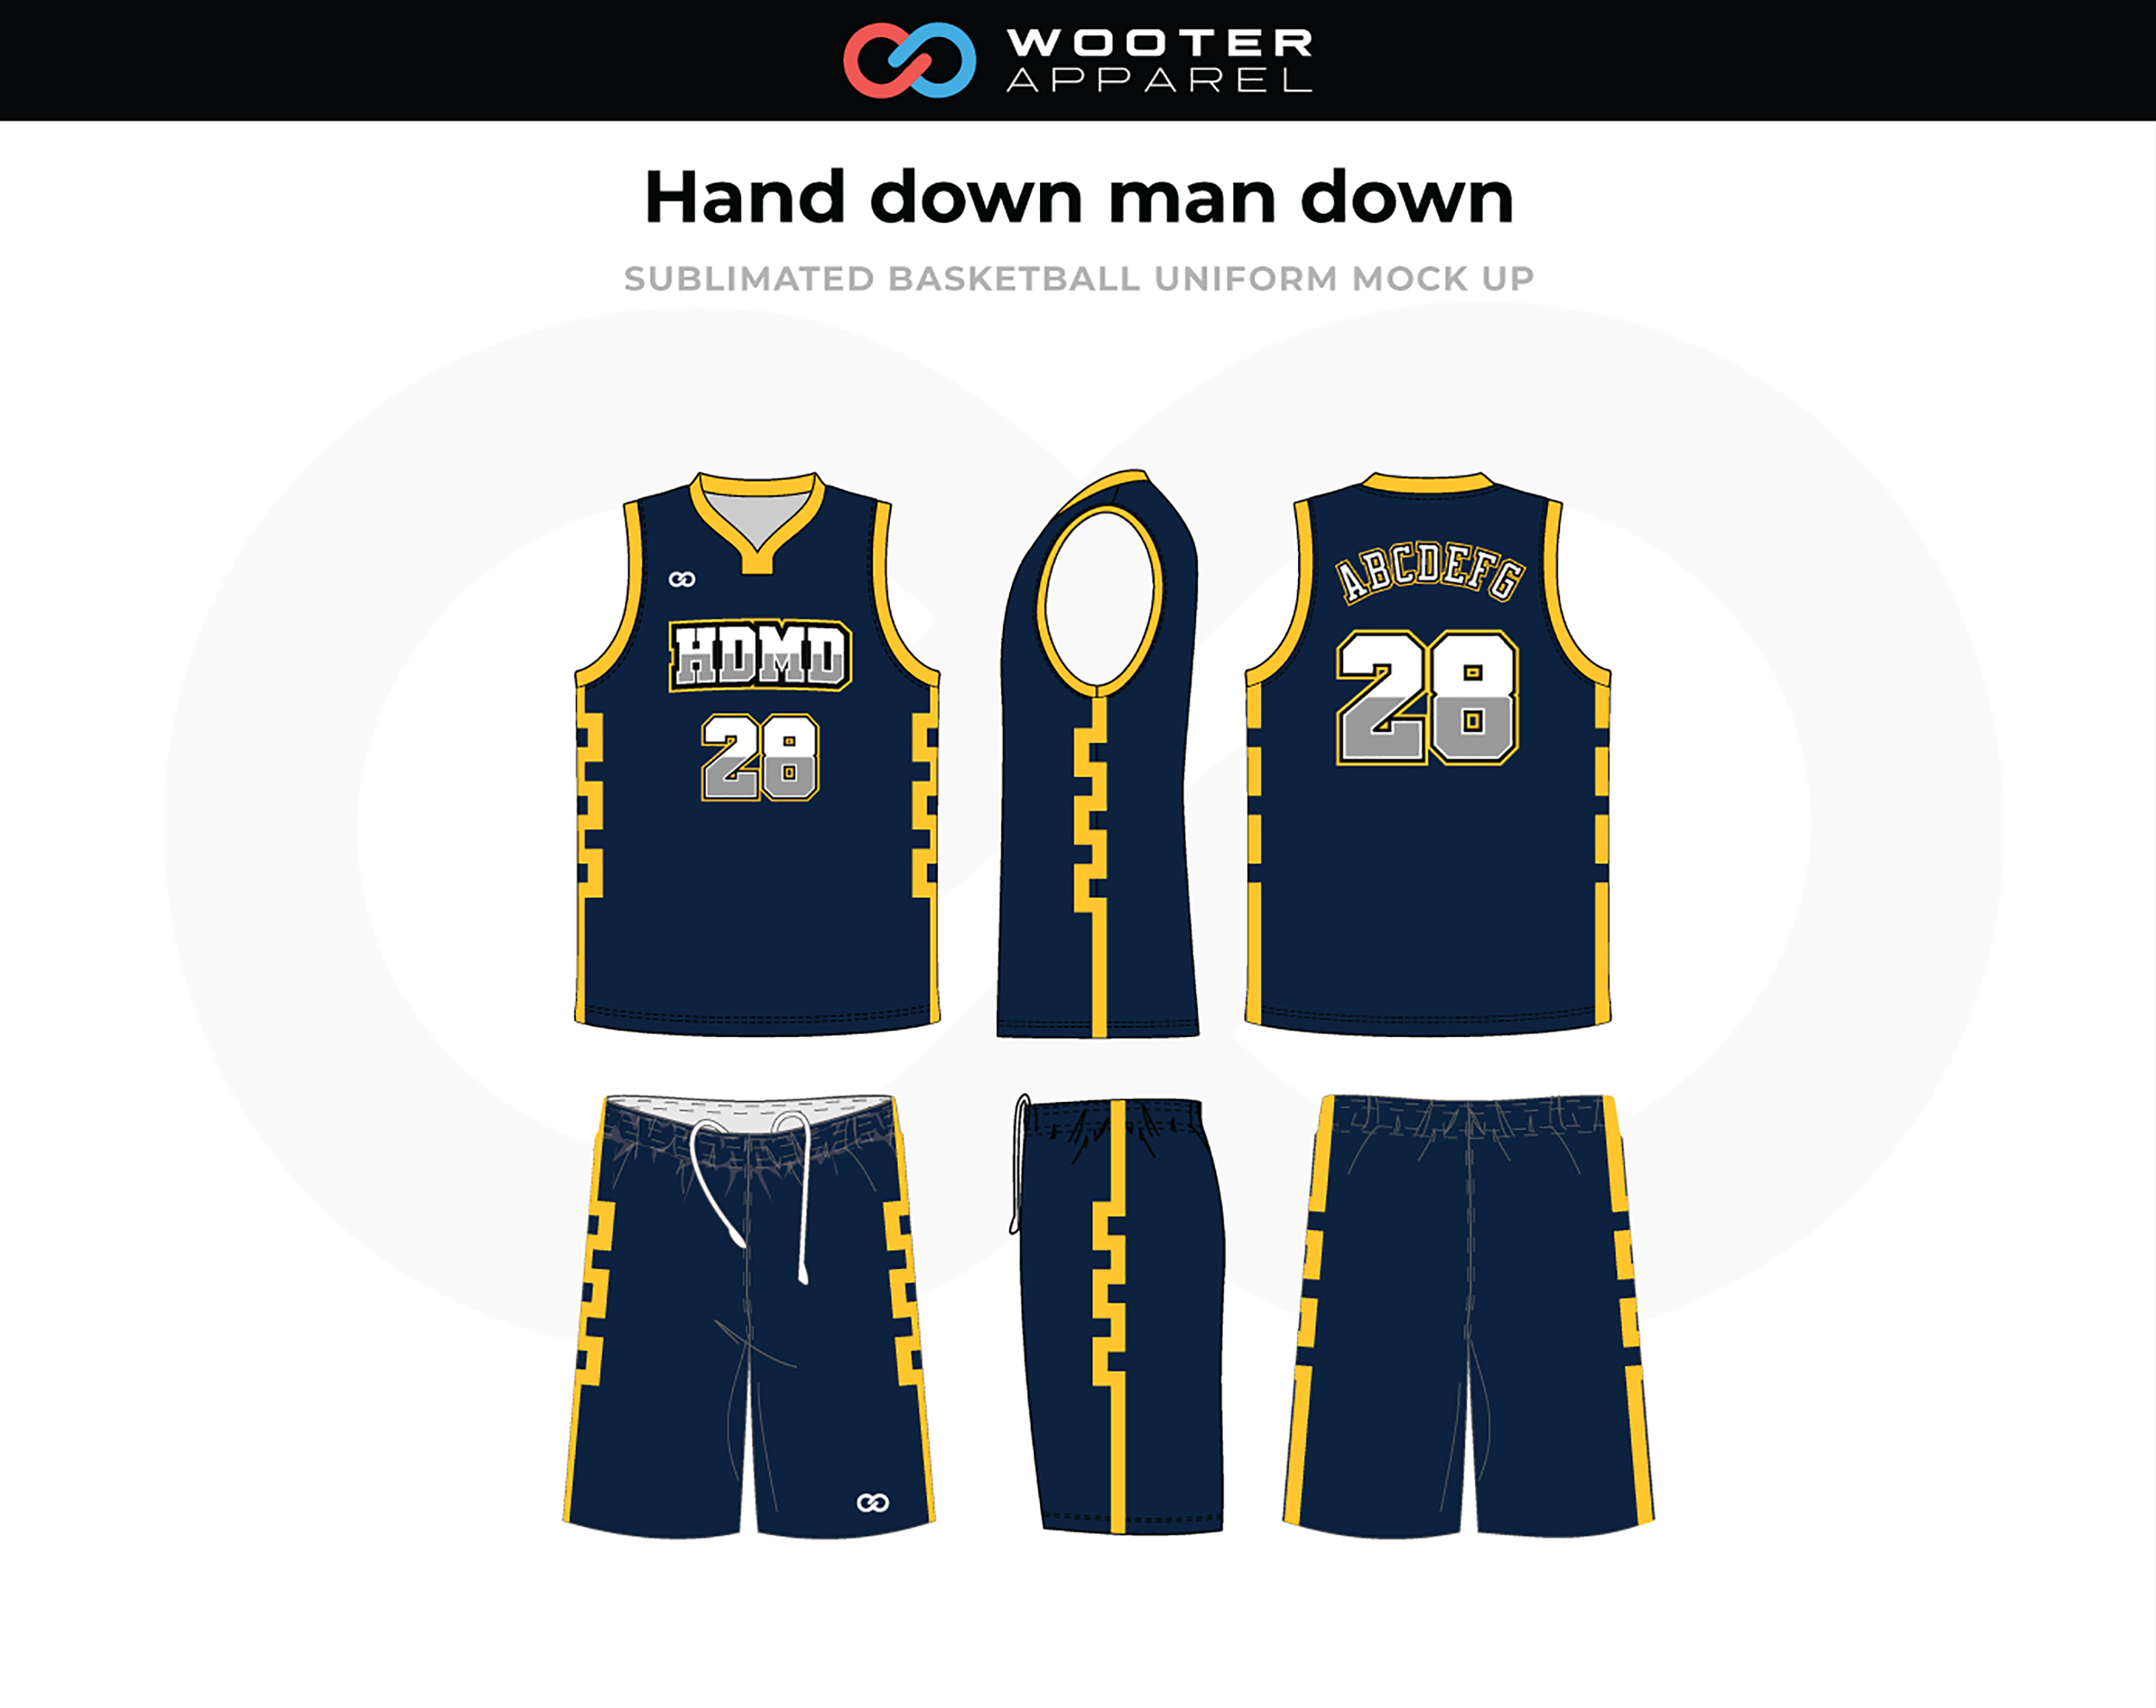 HAND DOWN MAN DOWN Blue Yellow White Basketball Uniform, Jersey and Shorts